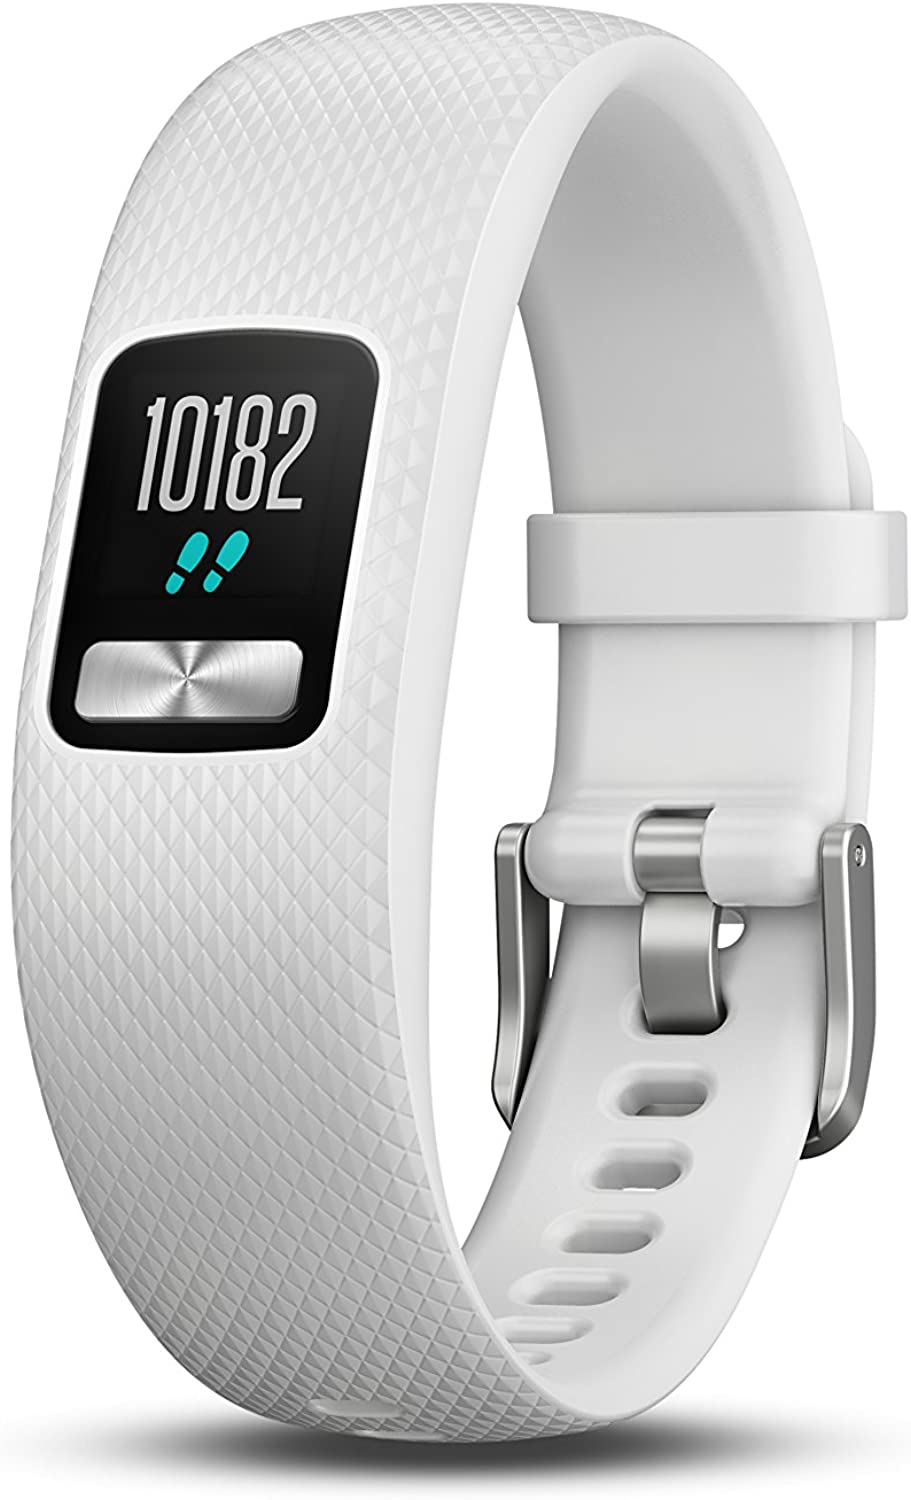 Garmin vívofit 4 Activity Tracker with 1+ Year Battery Life and color Display. Small Medium, White. 0100184701